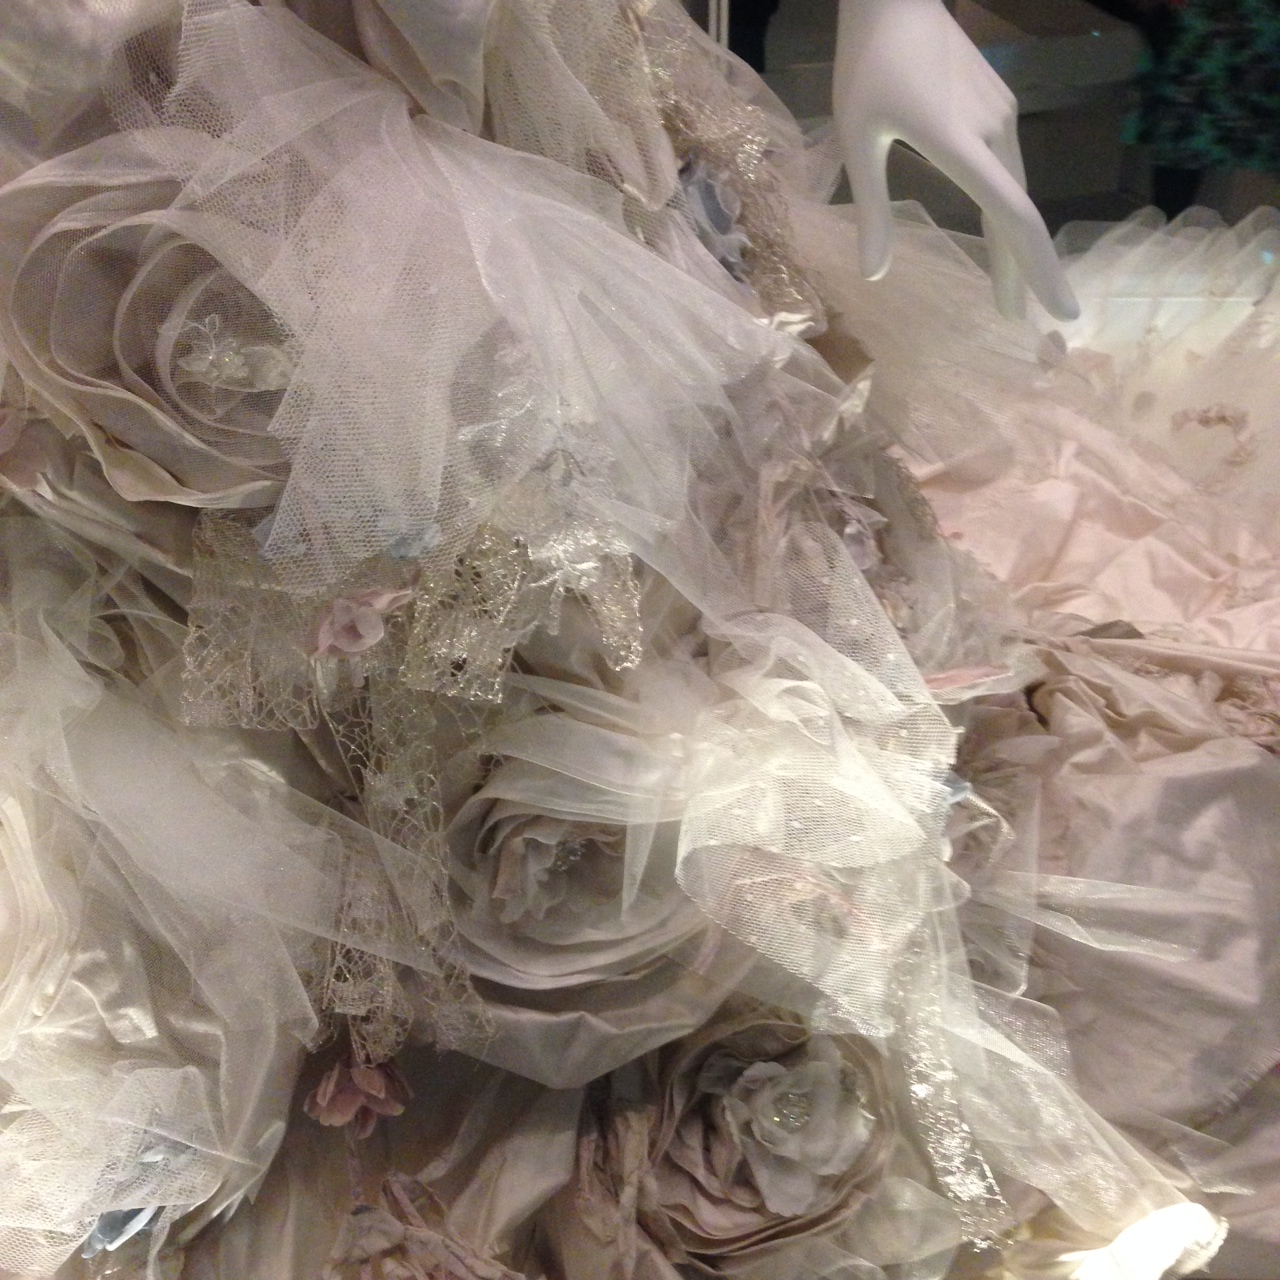 This is some of the detail on the skirt from Ian Stuart's 'Flower Bomb' gown and it was certainly spectacular. It would take a bold bride to wear this I think but if you've got a big personality, why try to pretend that you're demure and quiet on your wedding day?